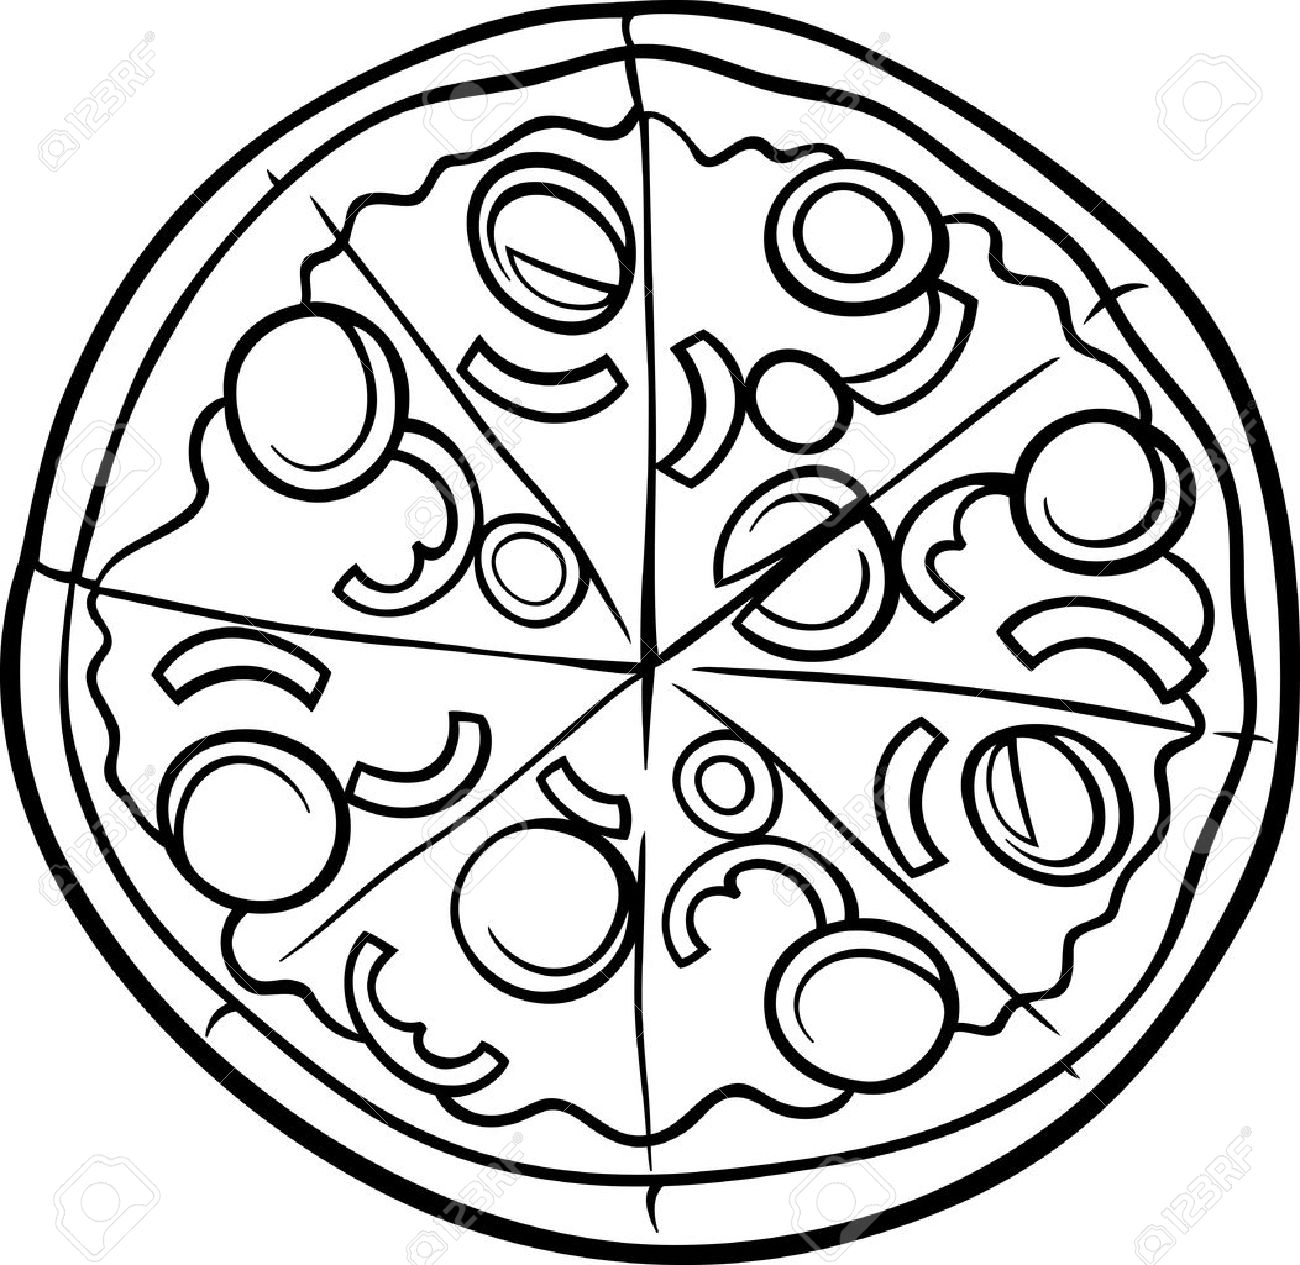 Uncategorized Drawing Pizza black and white cartoon illustration of italian pizza food object for coloring book stock vector